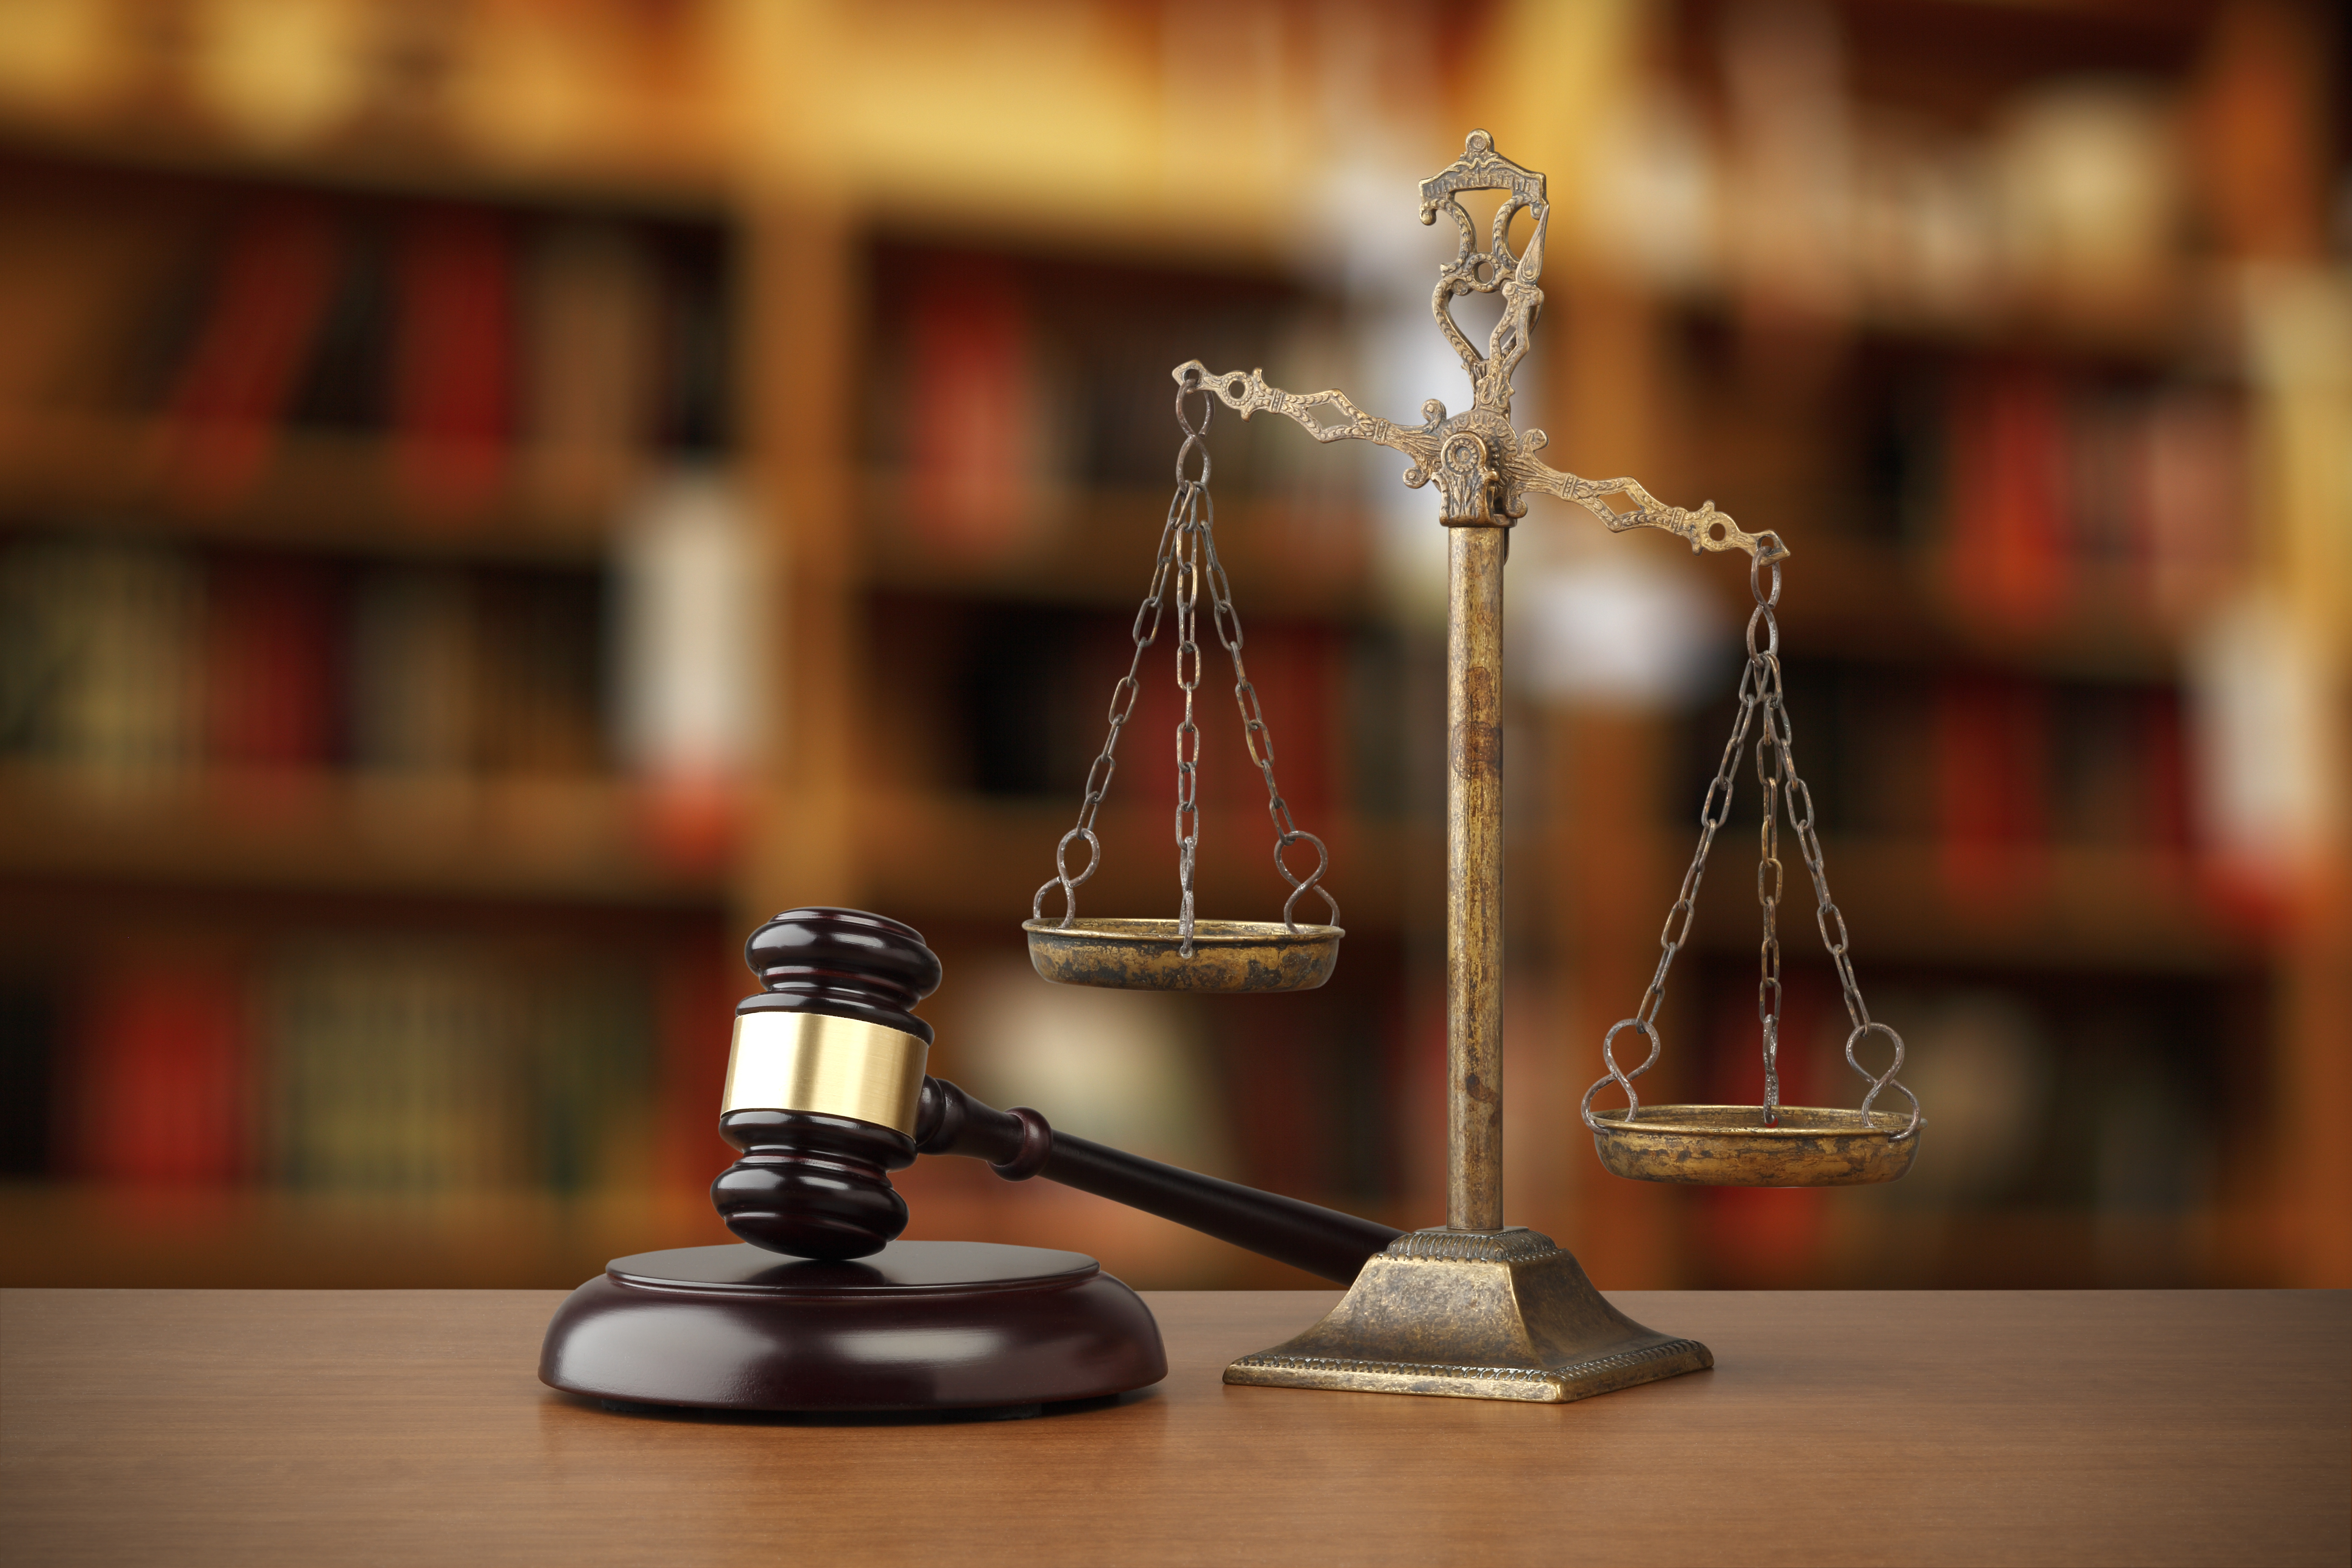 Making Justice Accessible: Designing Legal Services for the